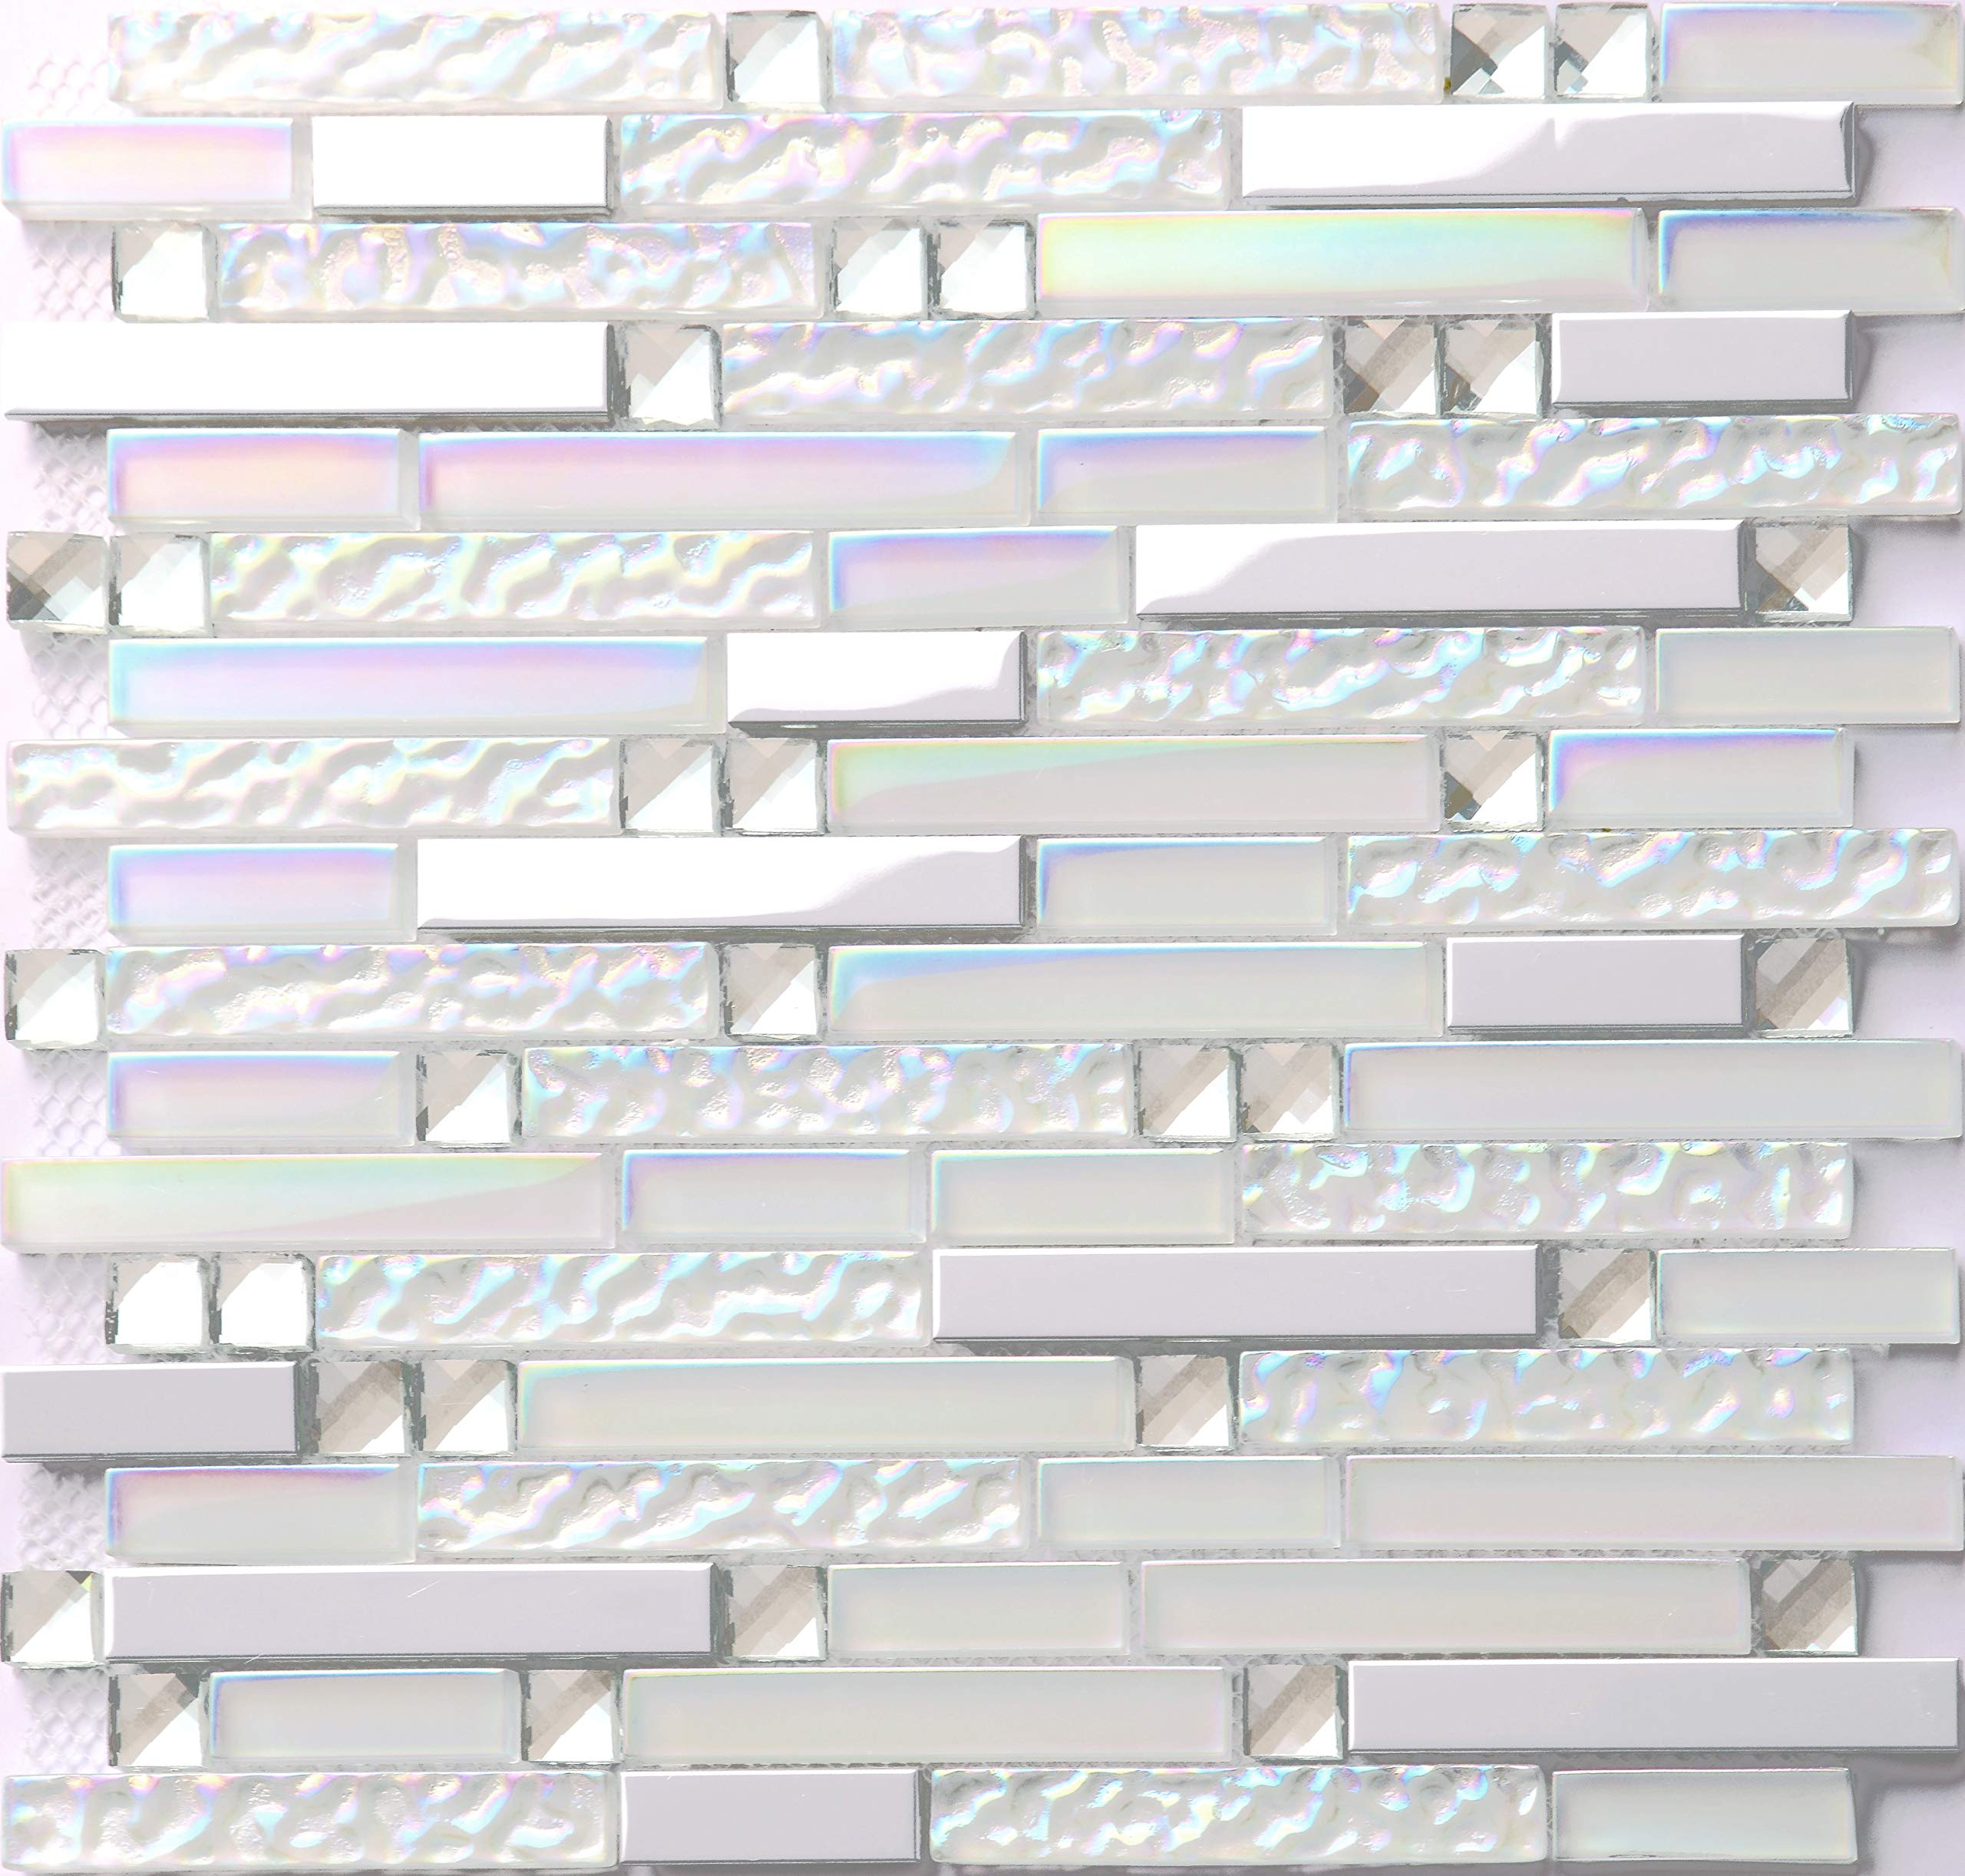 Hominter 11-Sheets Iridescent Glass Tile Backsplash, Silver Stainless Steel Metal Mosaic Tile, Rhinestone Crystal Bathroom and Kitchen Tiles NB01 by Hominter